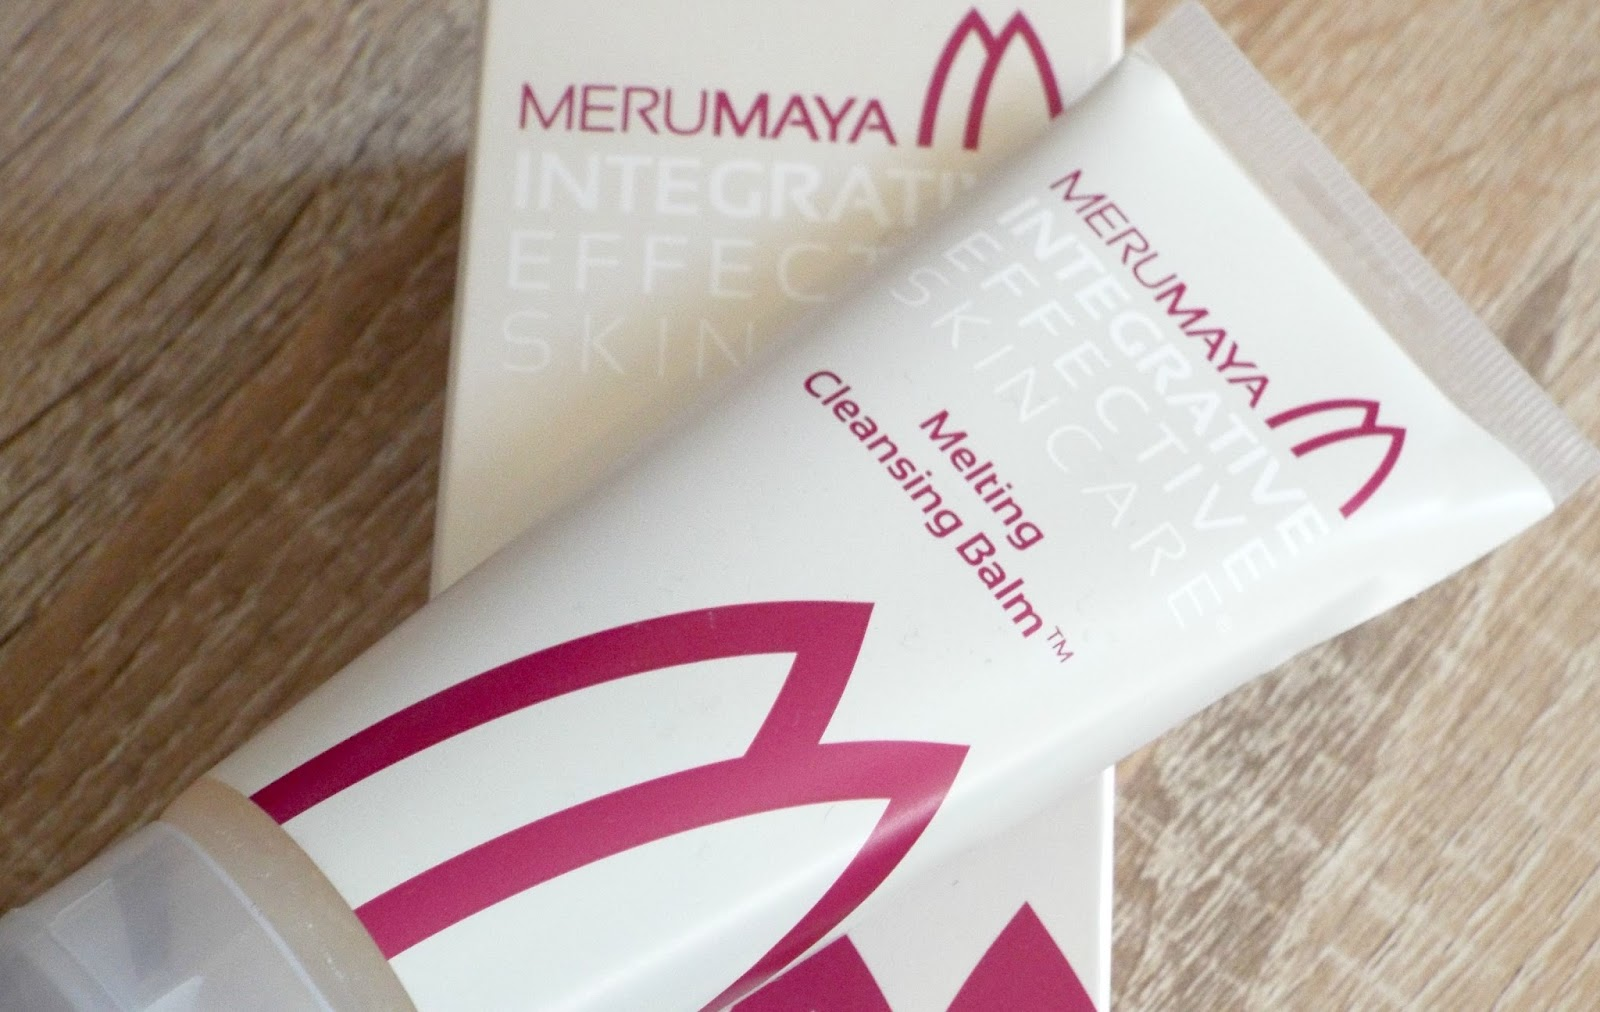 merumaya melting cleansing balm review